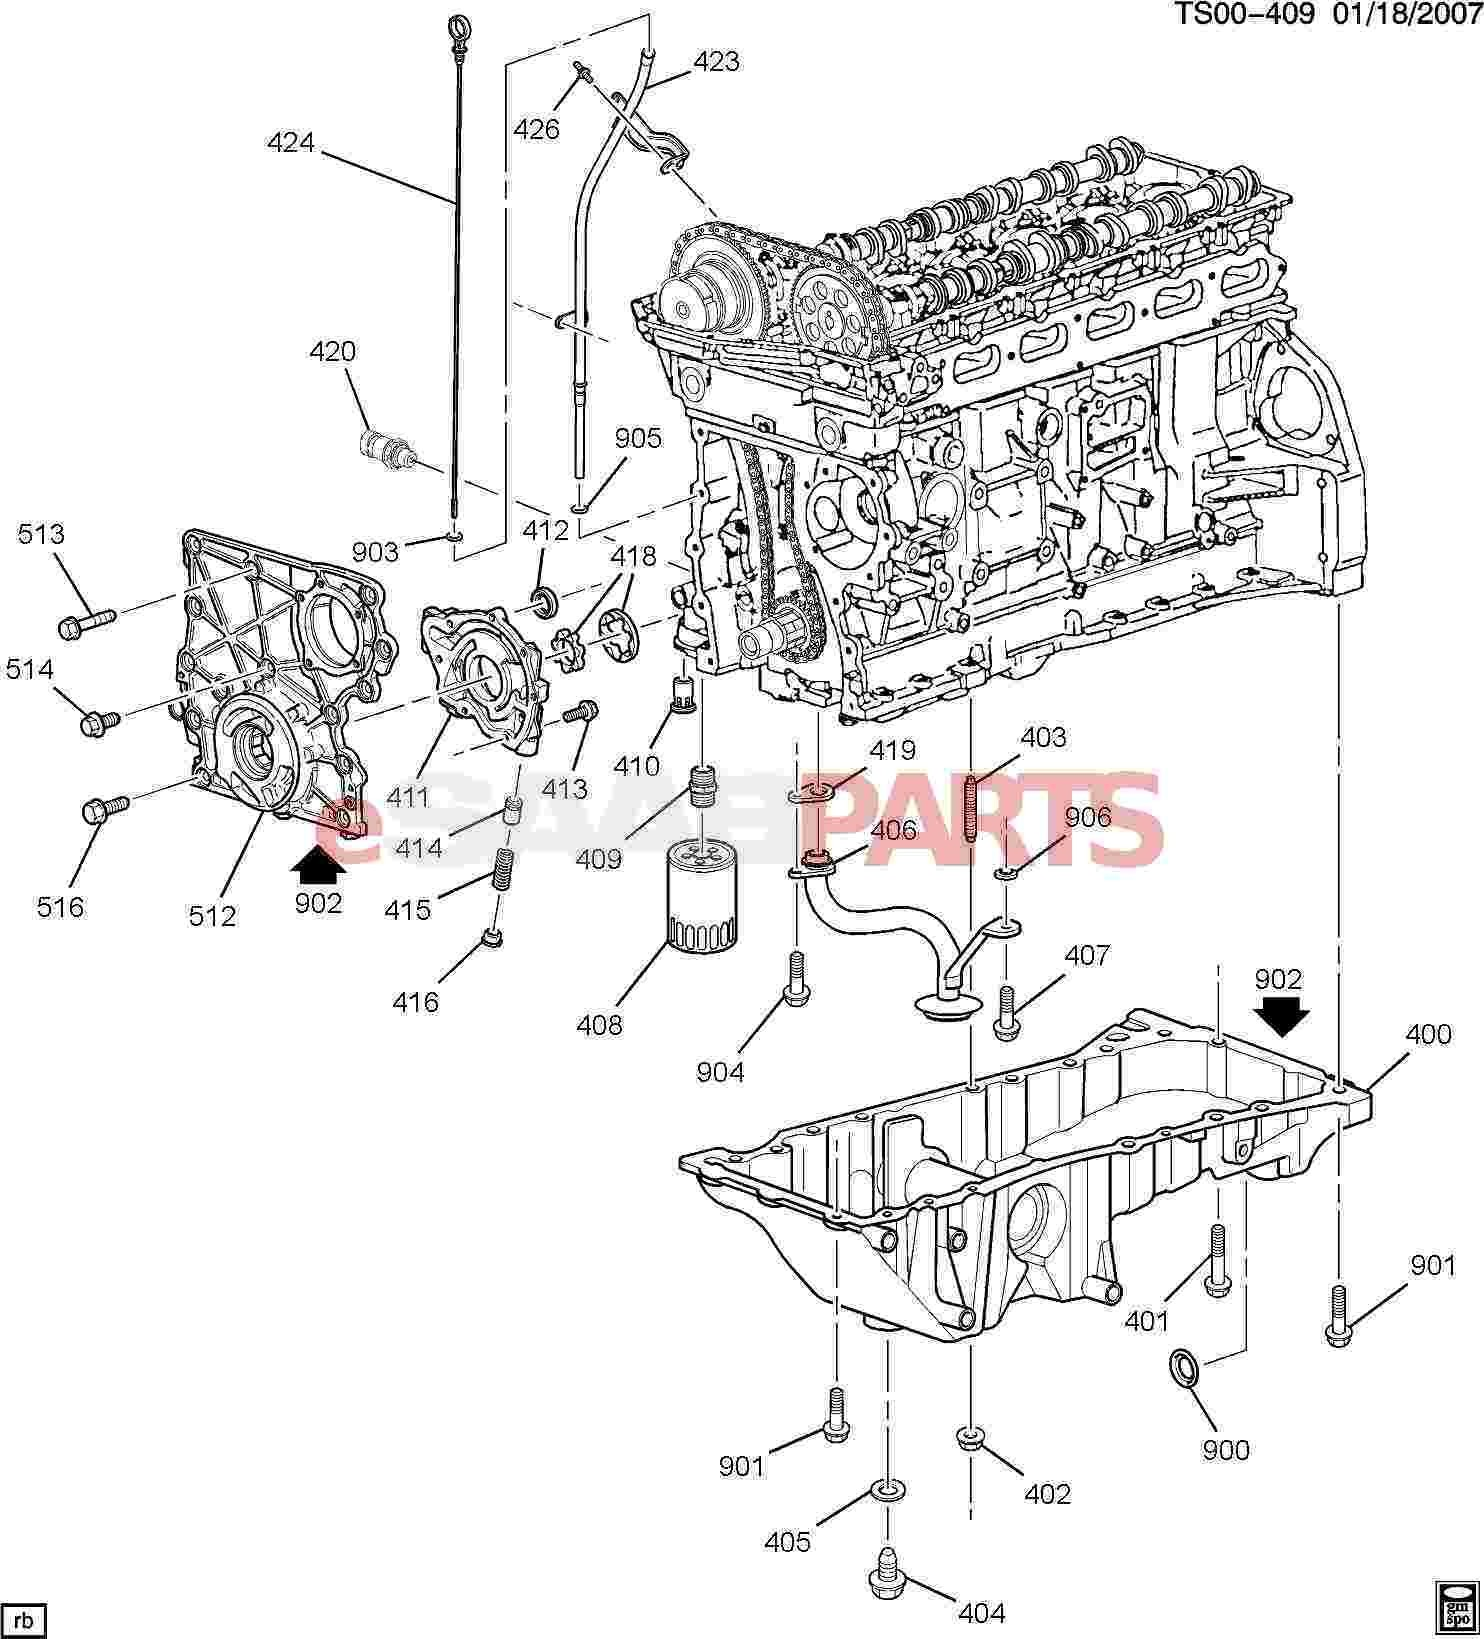 Car Parts Diagram for Engine ] Saab Bolt Hfh M6x1x60 18mm Thd 14 2 O D 8 8 3359gmw Of Car Parts Diagram for Engine